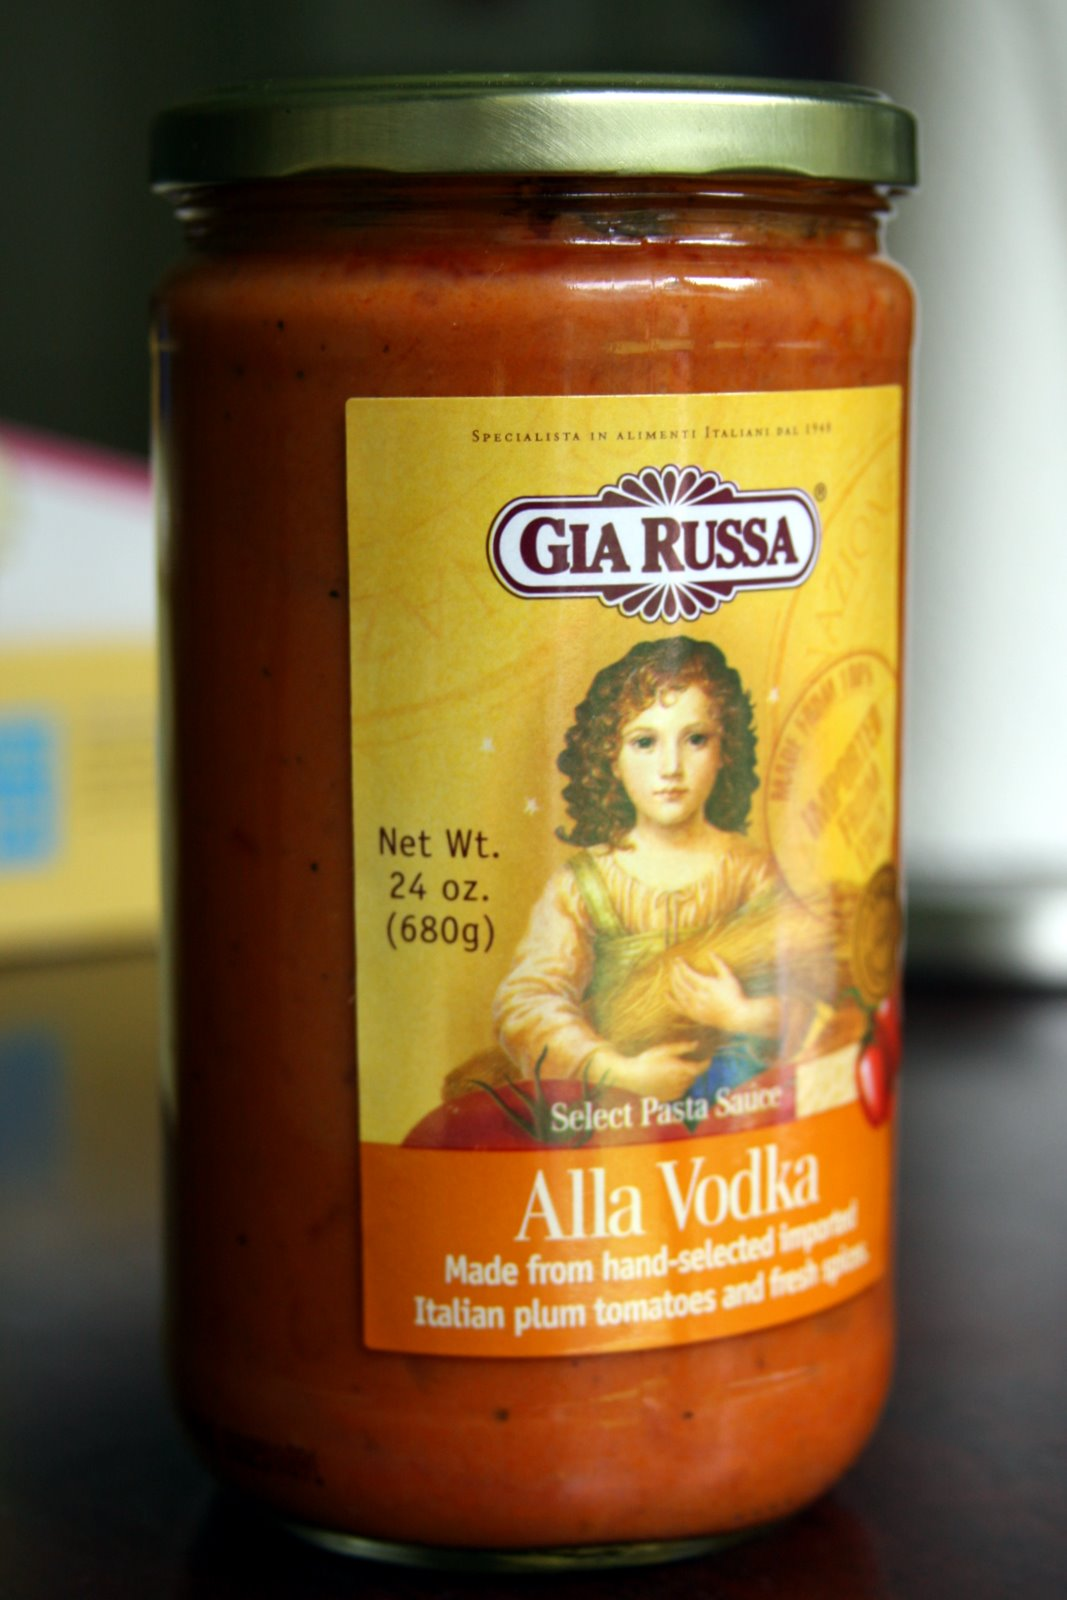 paleo-friendly-pre-made-sauces-in-stores?